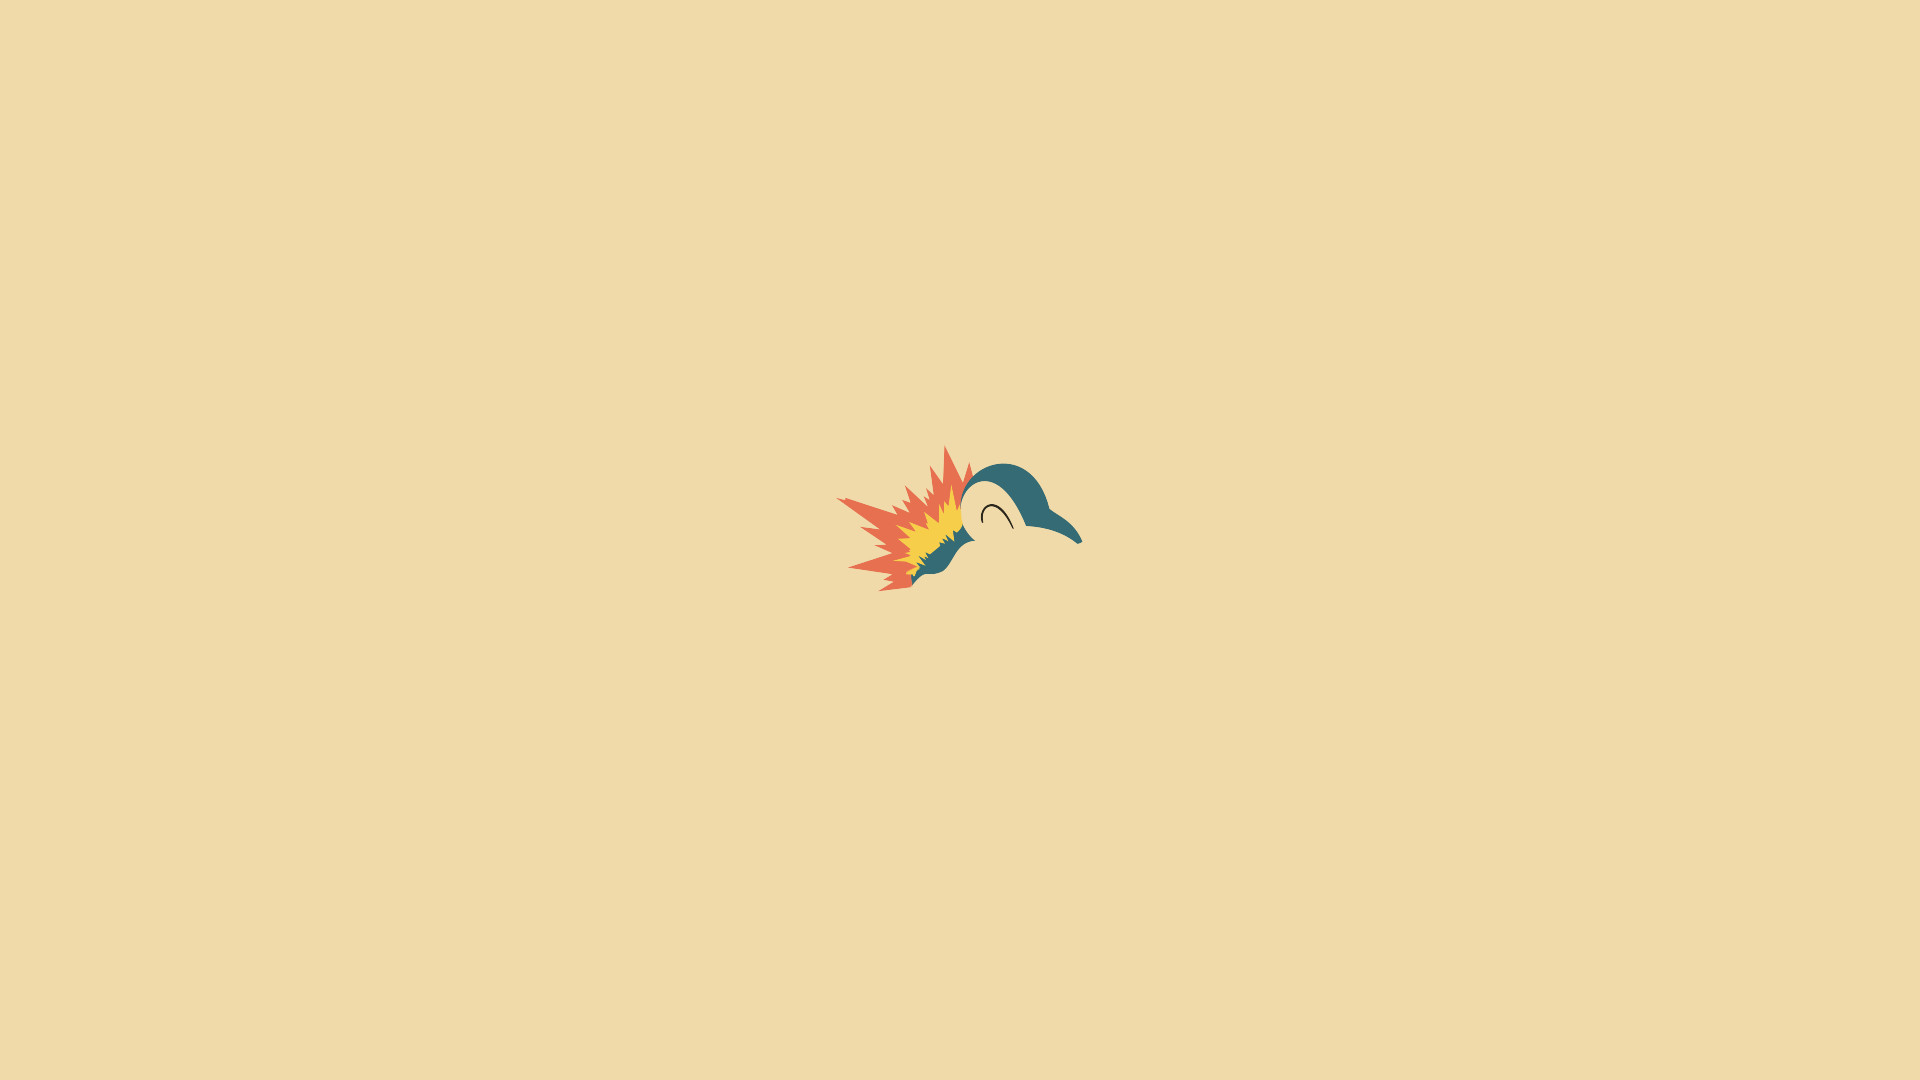 1920x1080 Cyndaquil HD Wallpaper Source · Minimalist Cyndaquil by Muzikere on  DeviantArt